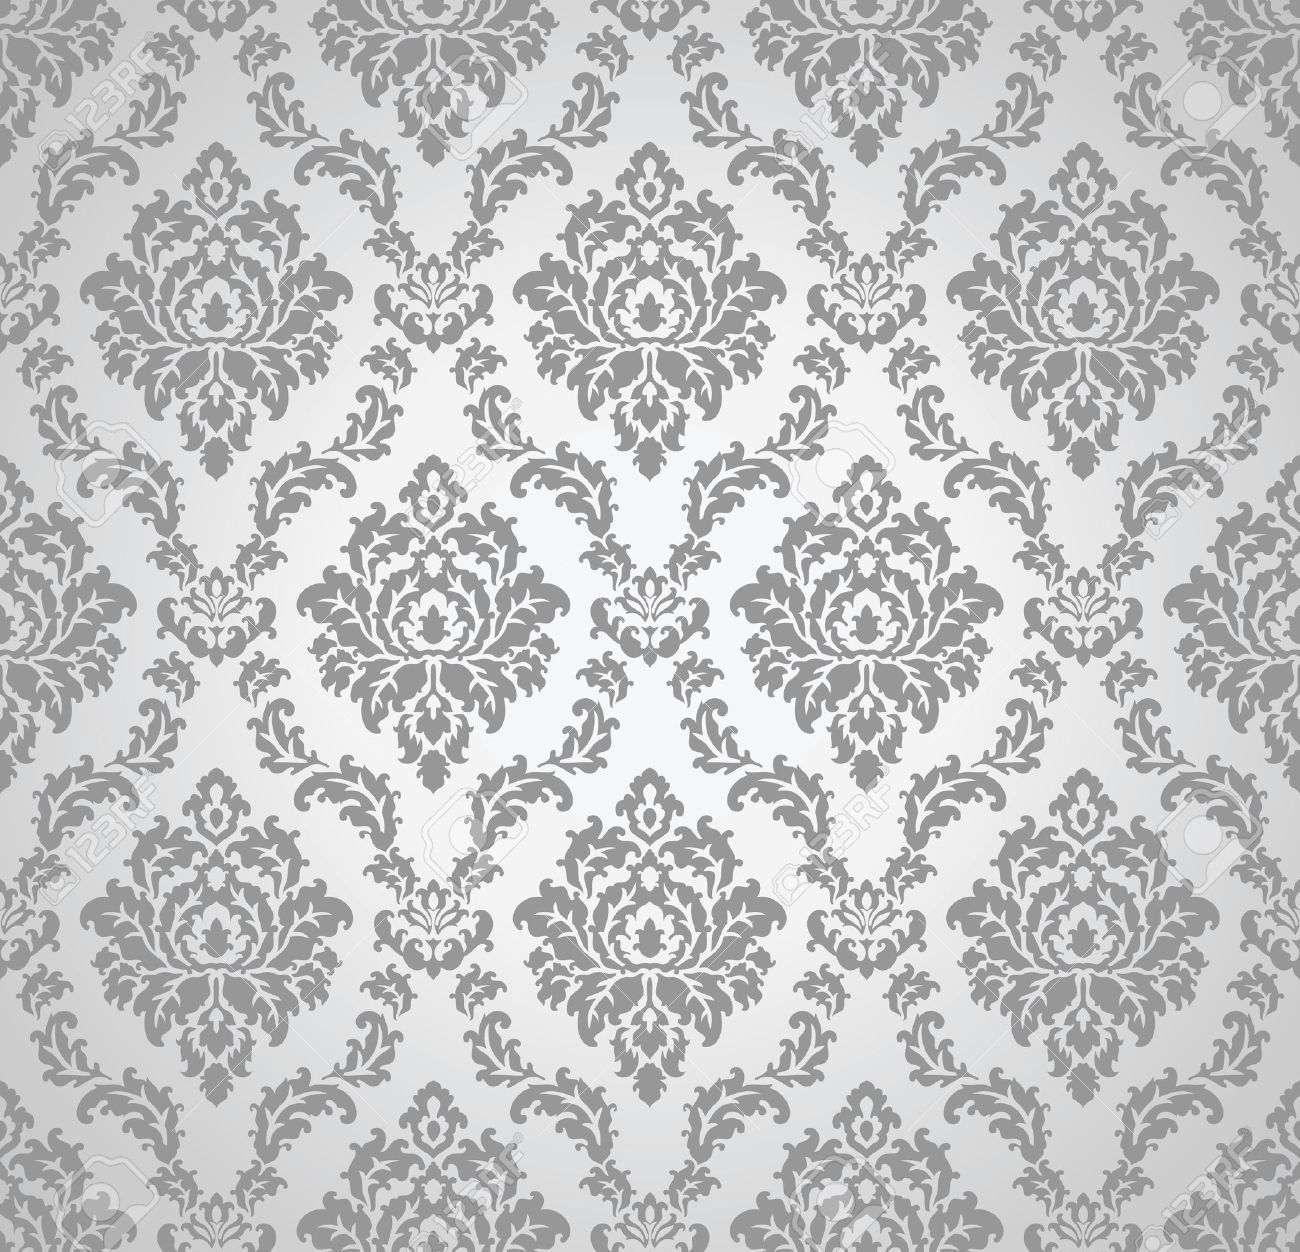 Seamless damask wallpaper Stock Vector   19882716. Seamless Damask Wallpaper Royalty Free Cliparts  Vectors  And